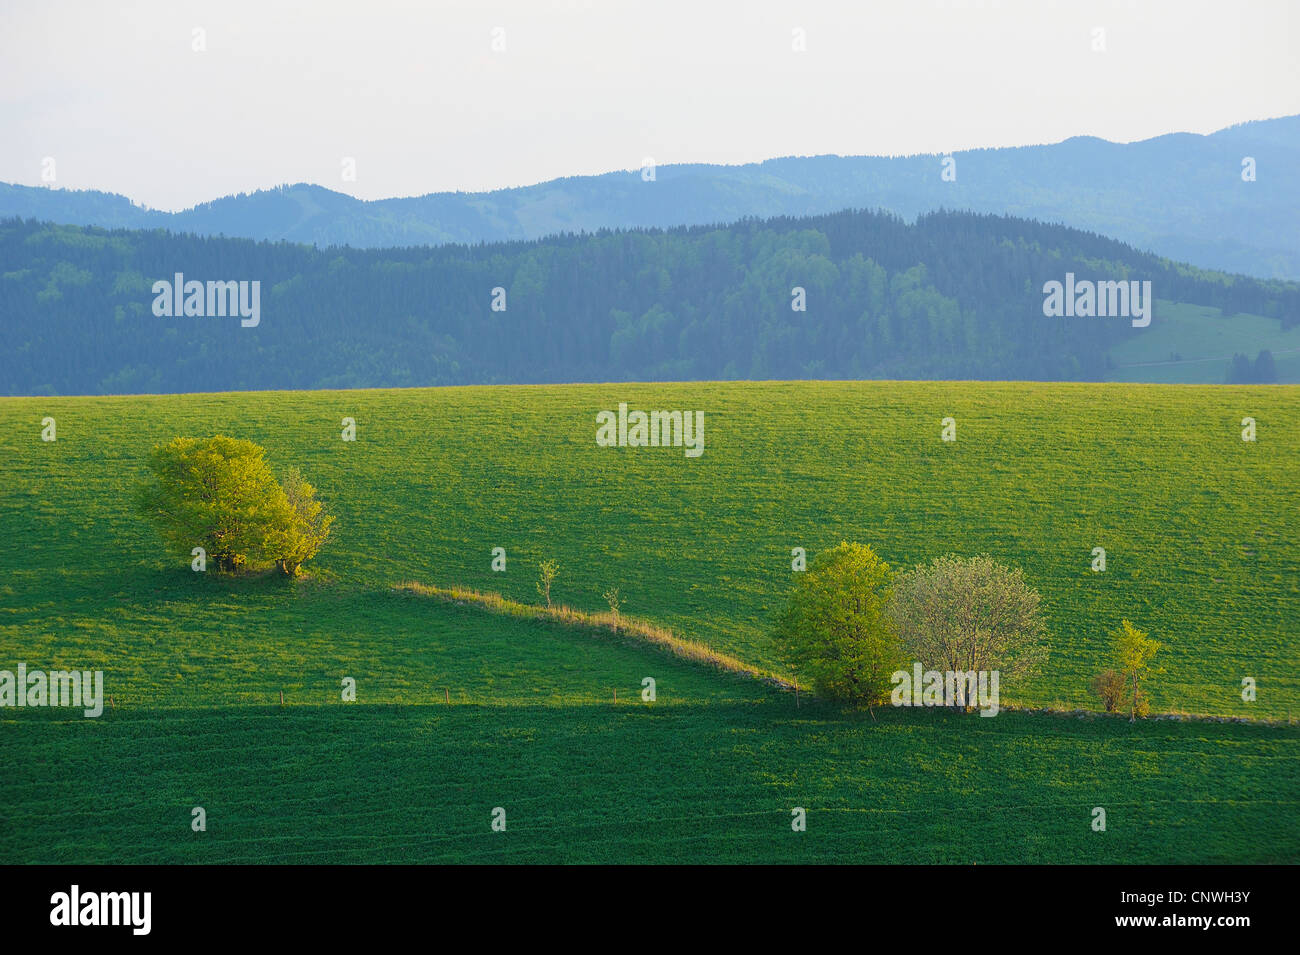 hill with meadows and groups of trees, Germany, Baden-Wuerttemberg, Black Forest, Schauinsland - Stock Image